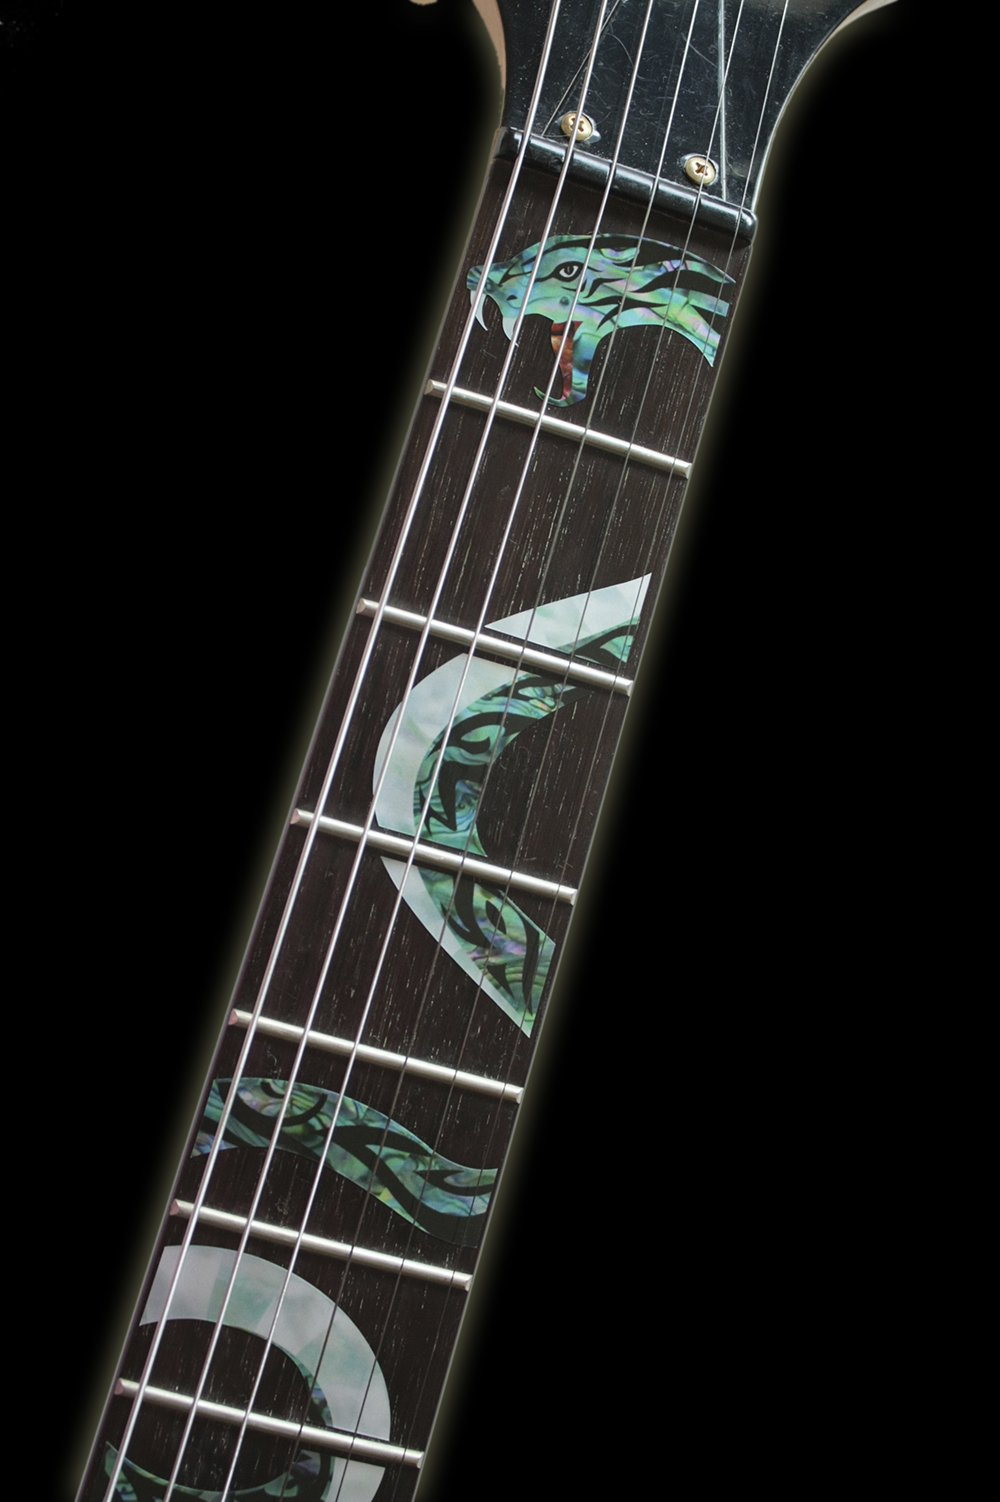 Fretboard Markers Inlay Sticker Decals for Guitar - Twisted Snake by Inlaystickers (Image #2)